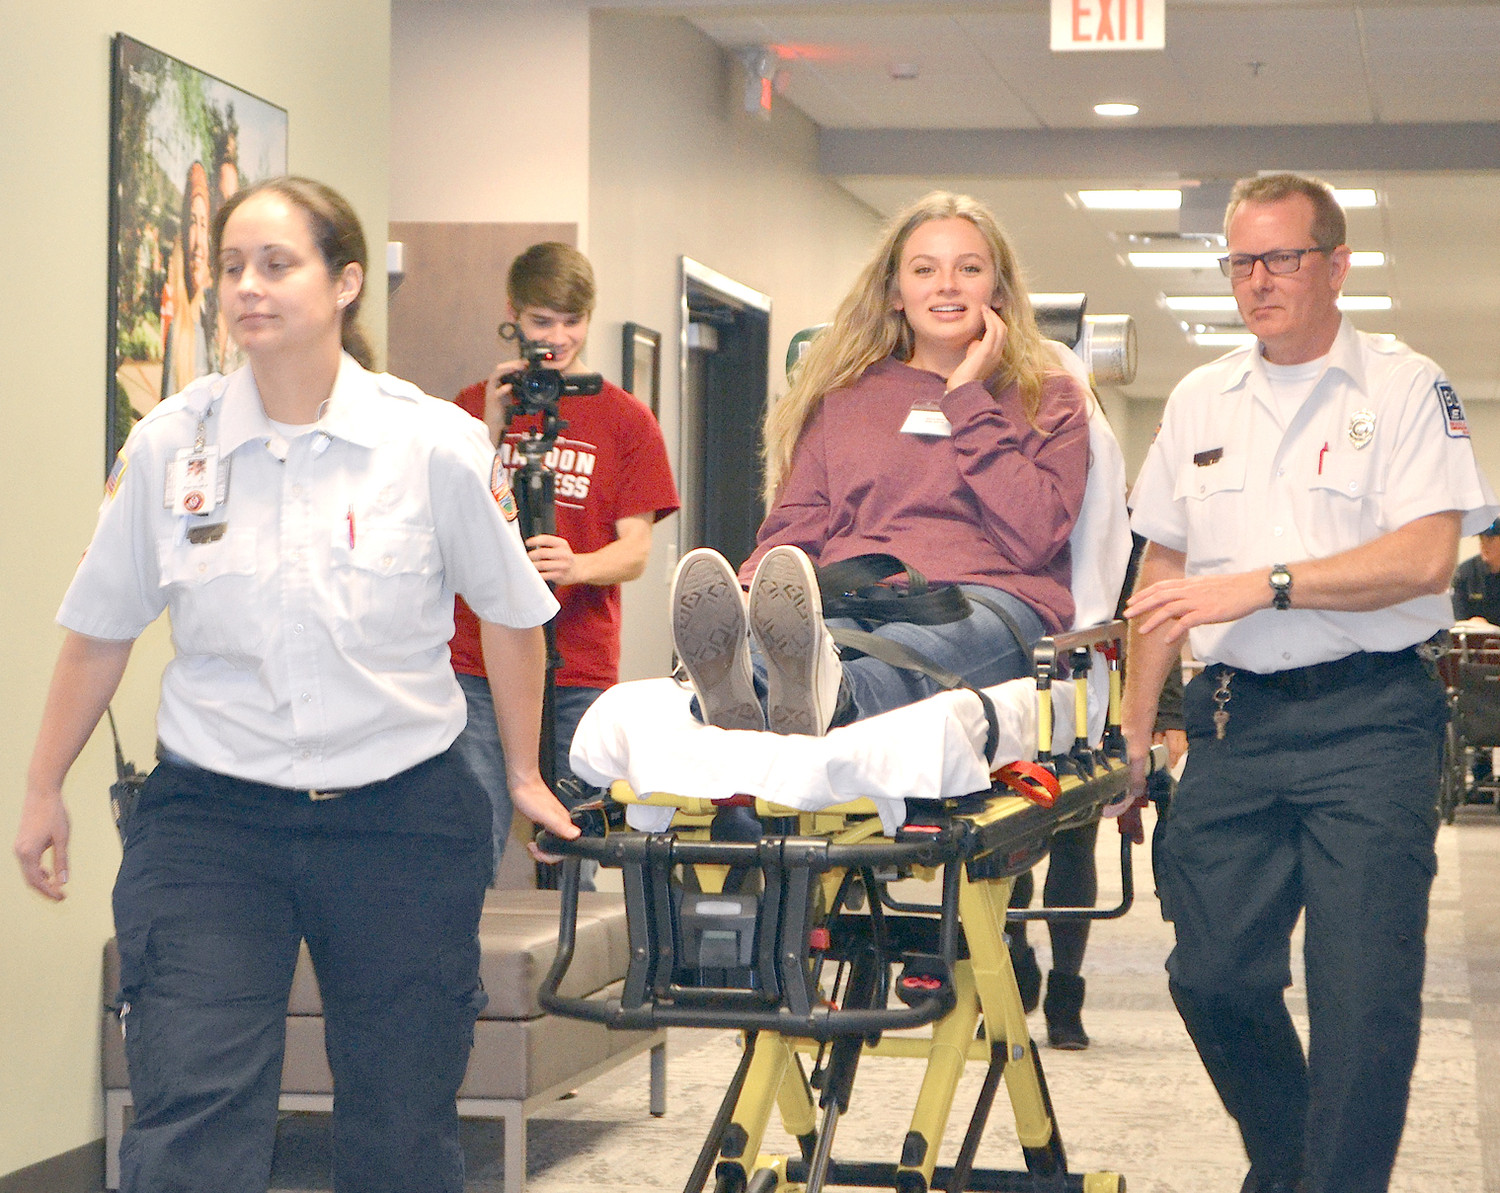 LEE UNIVERSITY STUDENT Kylee Hormann is transported by emergency personnel Megan Hall and Tim Plemons to the make-shift emergency room during the mass casualty drill held Wednesday at the university's School of Nursing.